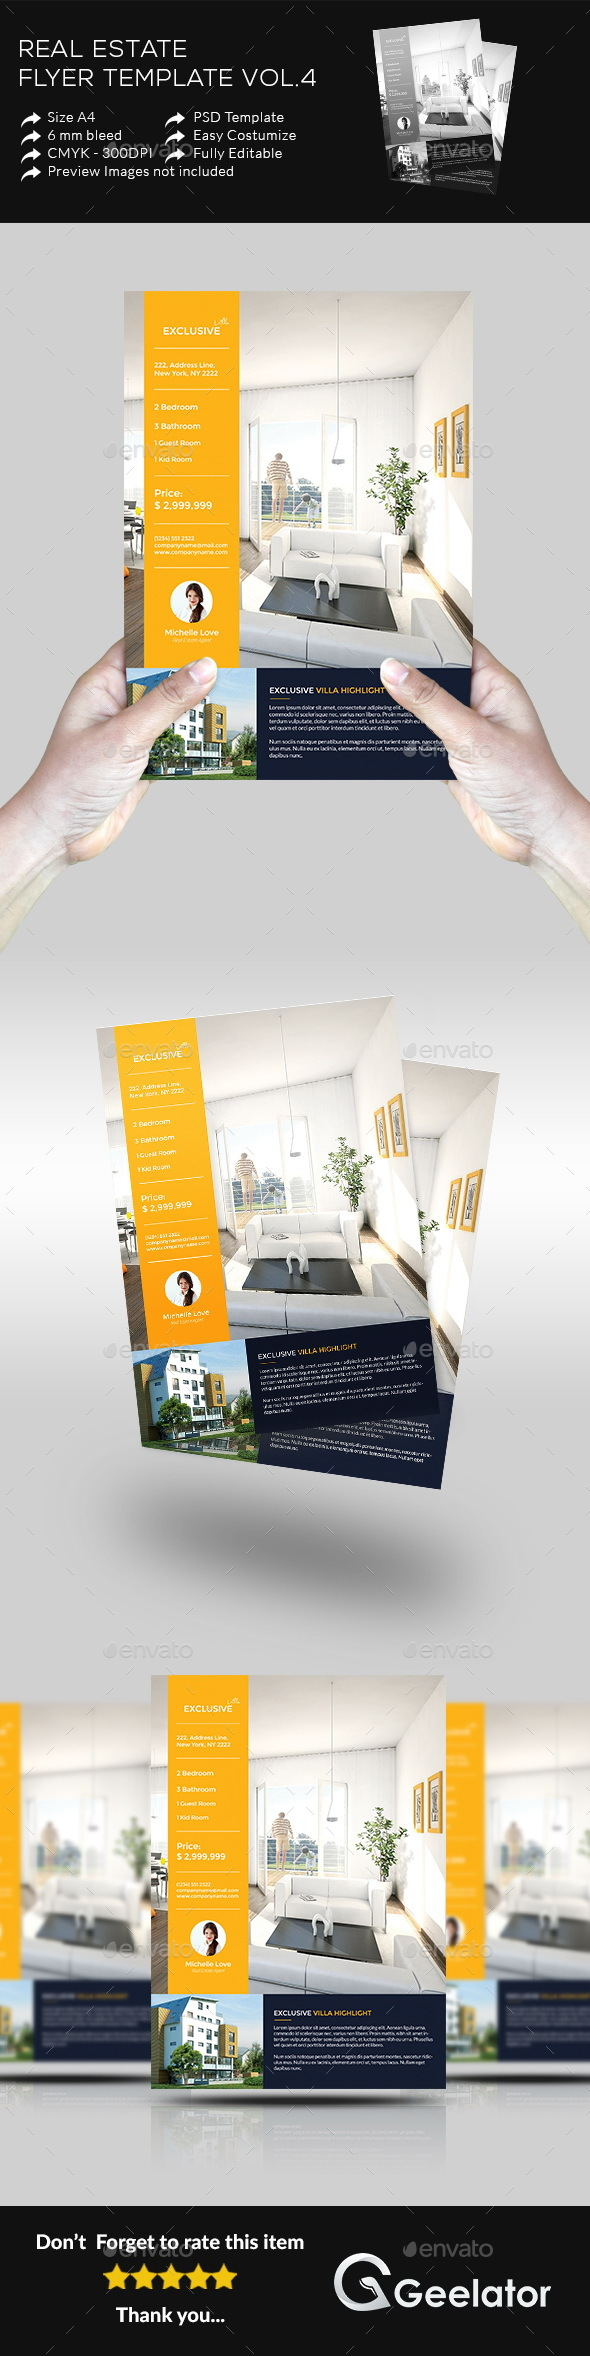 Real Estate Flyer Template Vol.4